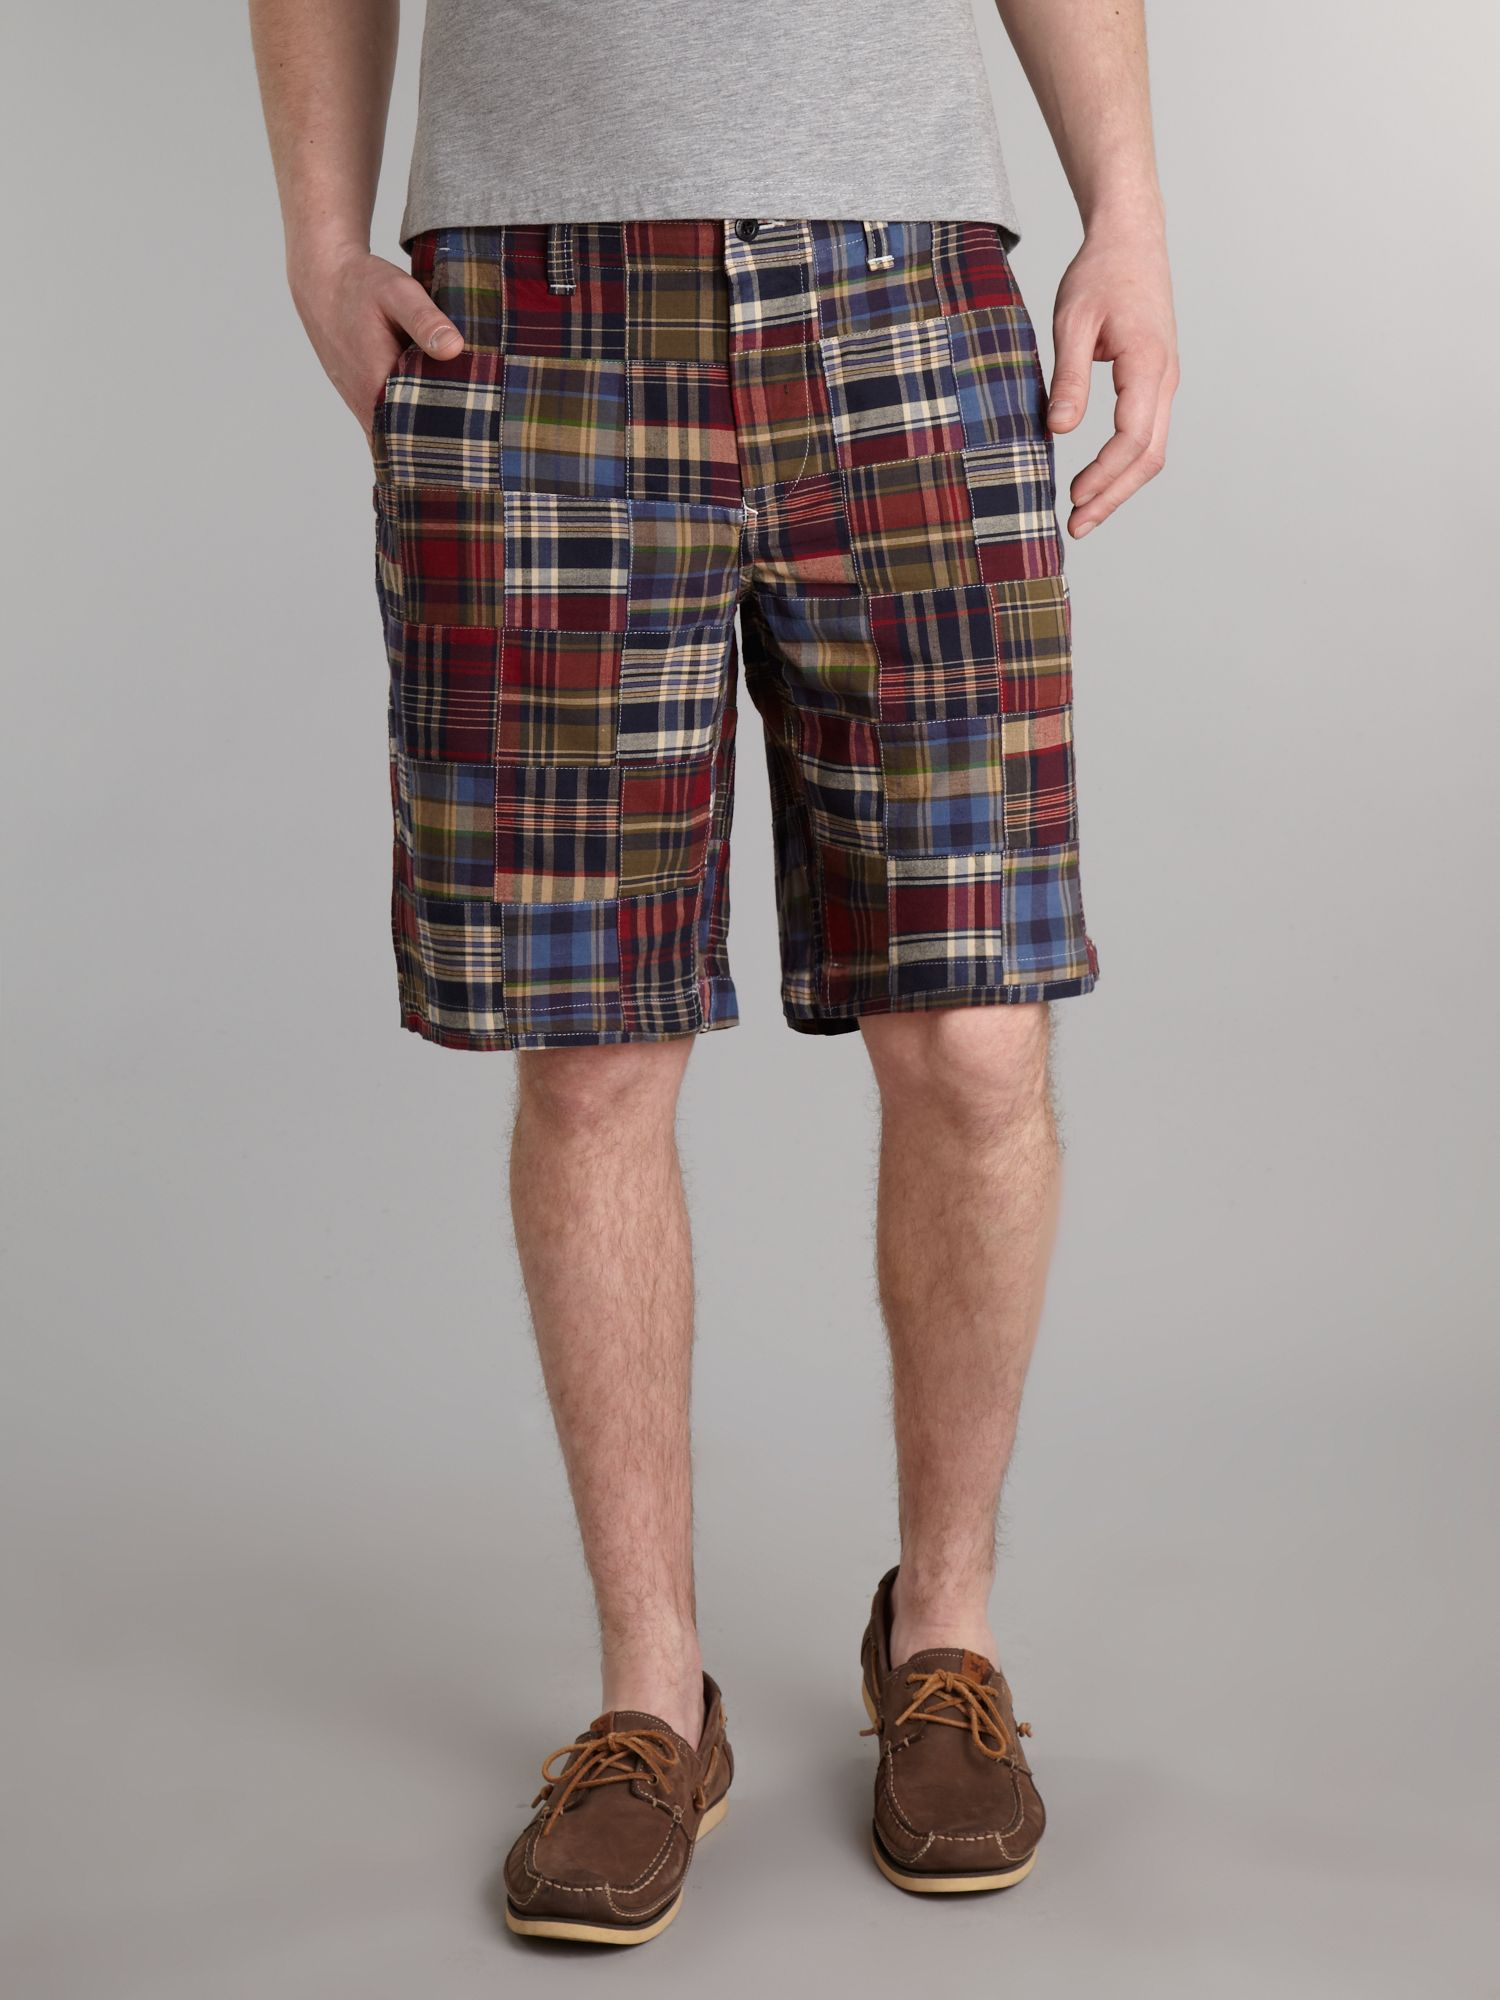 Patchwork bermuda shorts